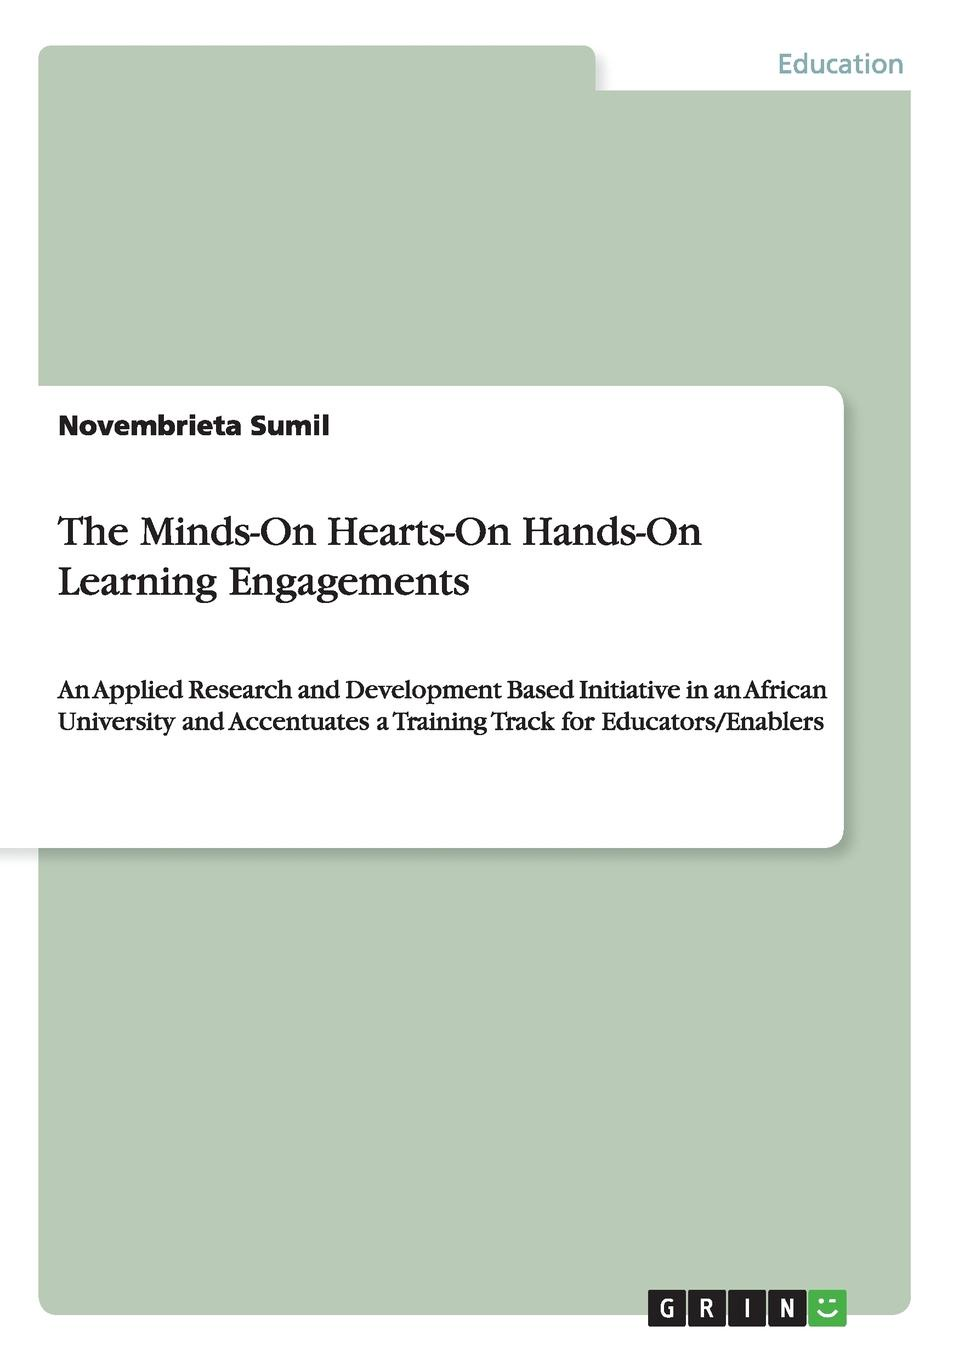 Novembrieta Sumil The Minds-On Hearts-On Hands-On Learning Engagements teacher centered vs learner centered approach